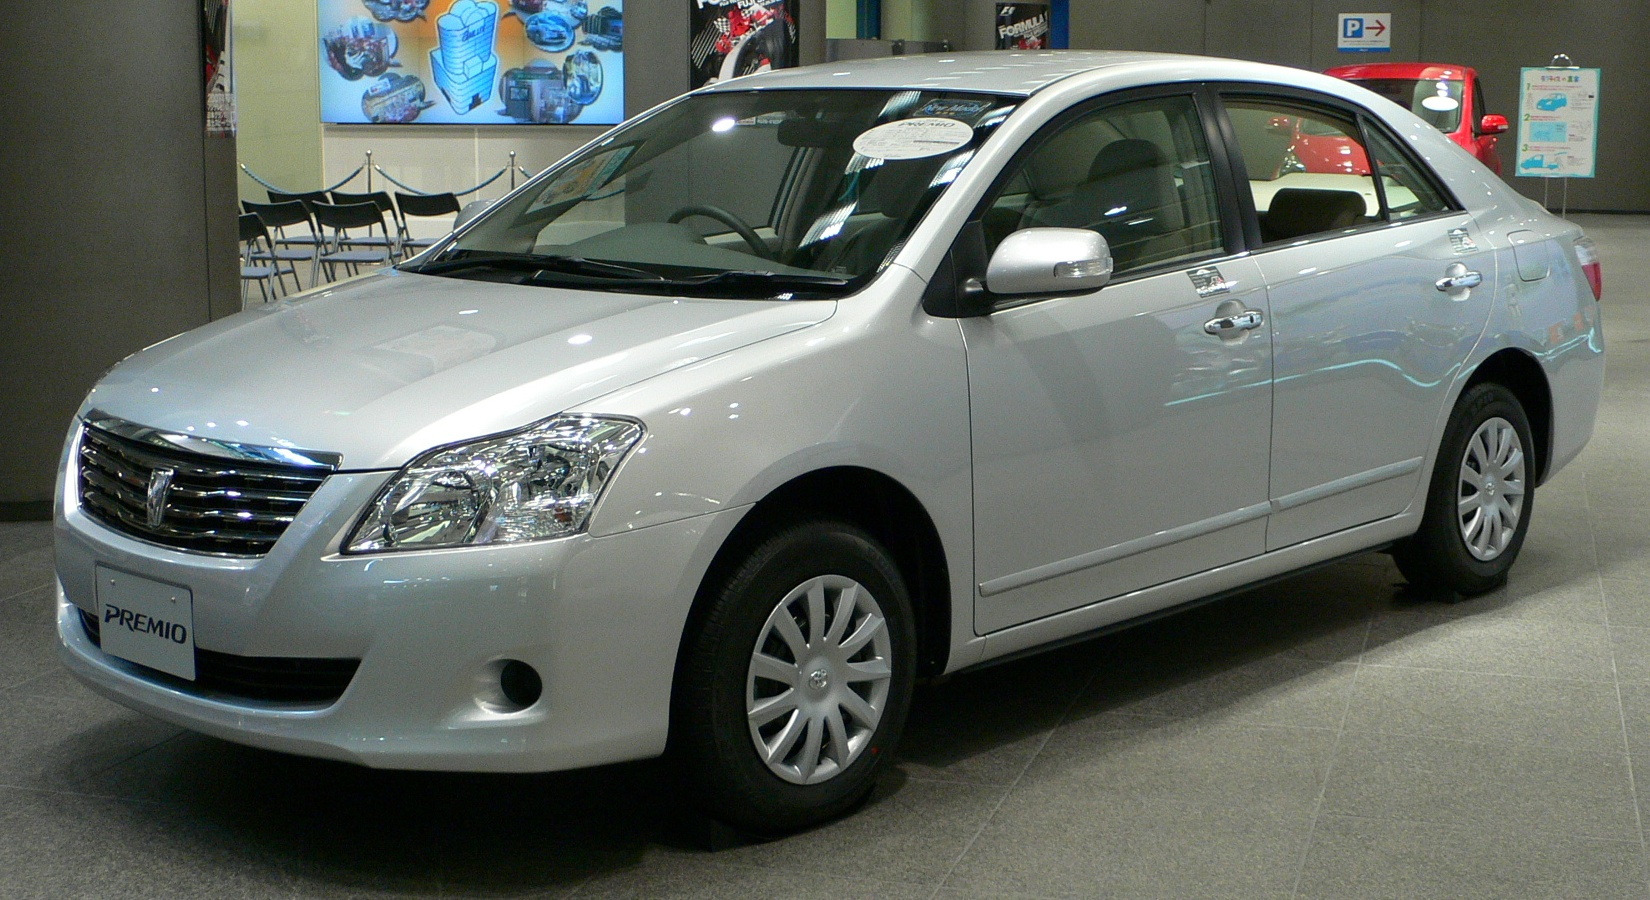 Toyota premio 2005 photo - 1